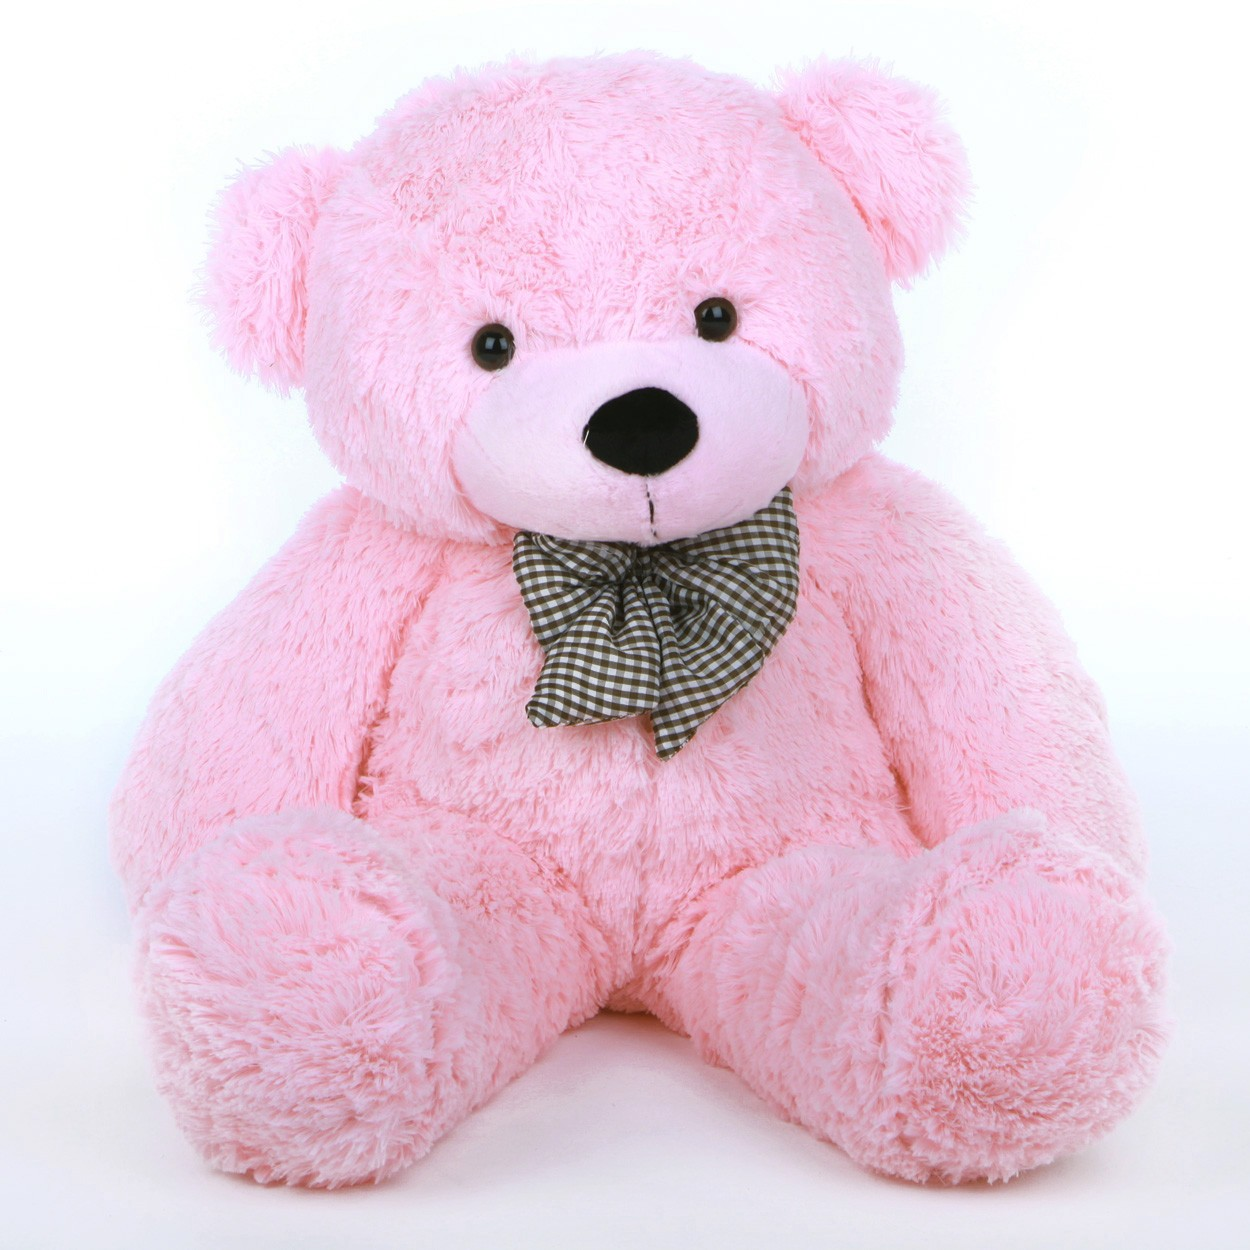 Free Download 25 Romantic Teddy Bear Wallpapers 1250x1250 For